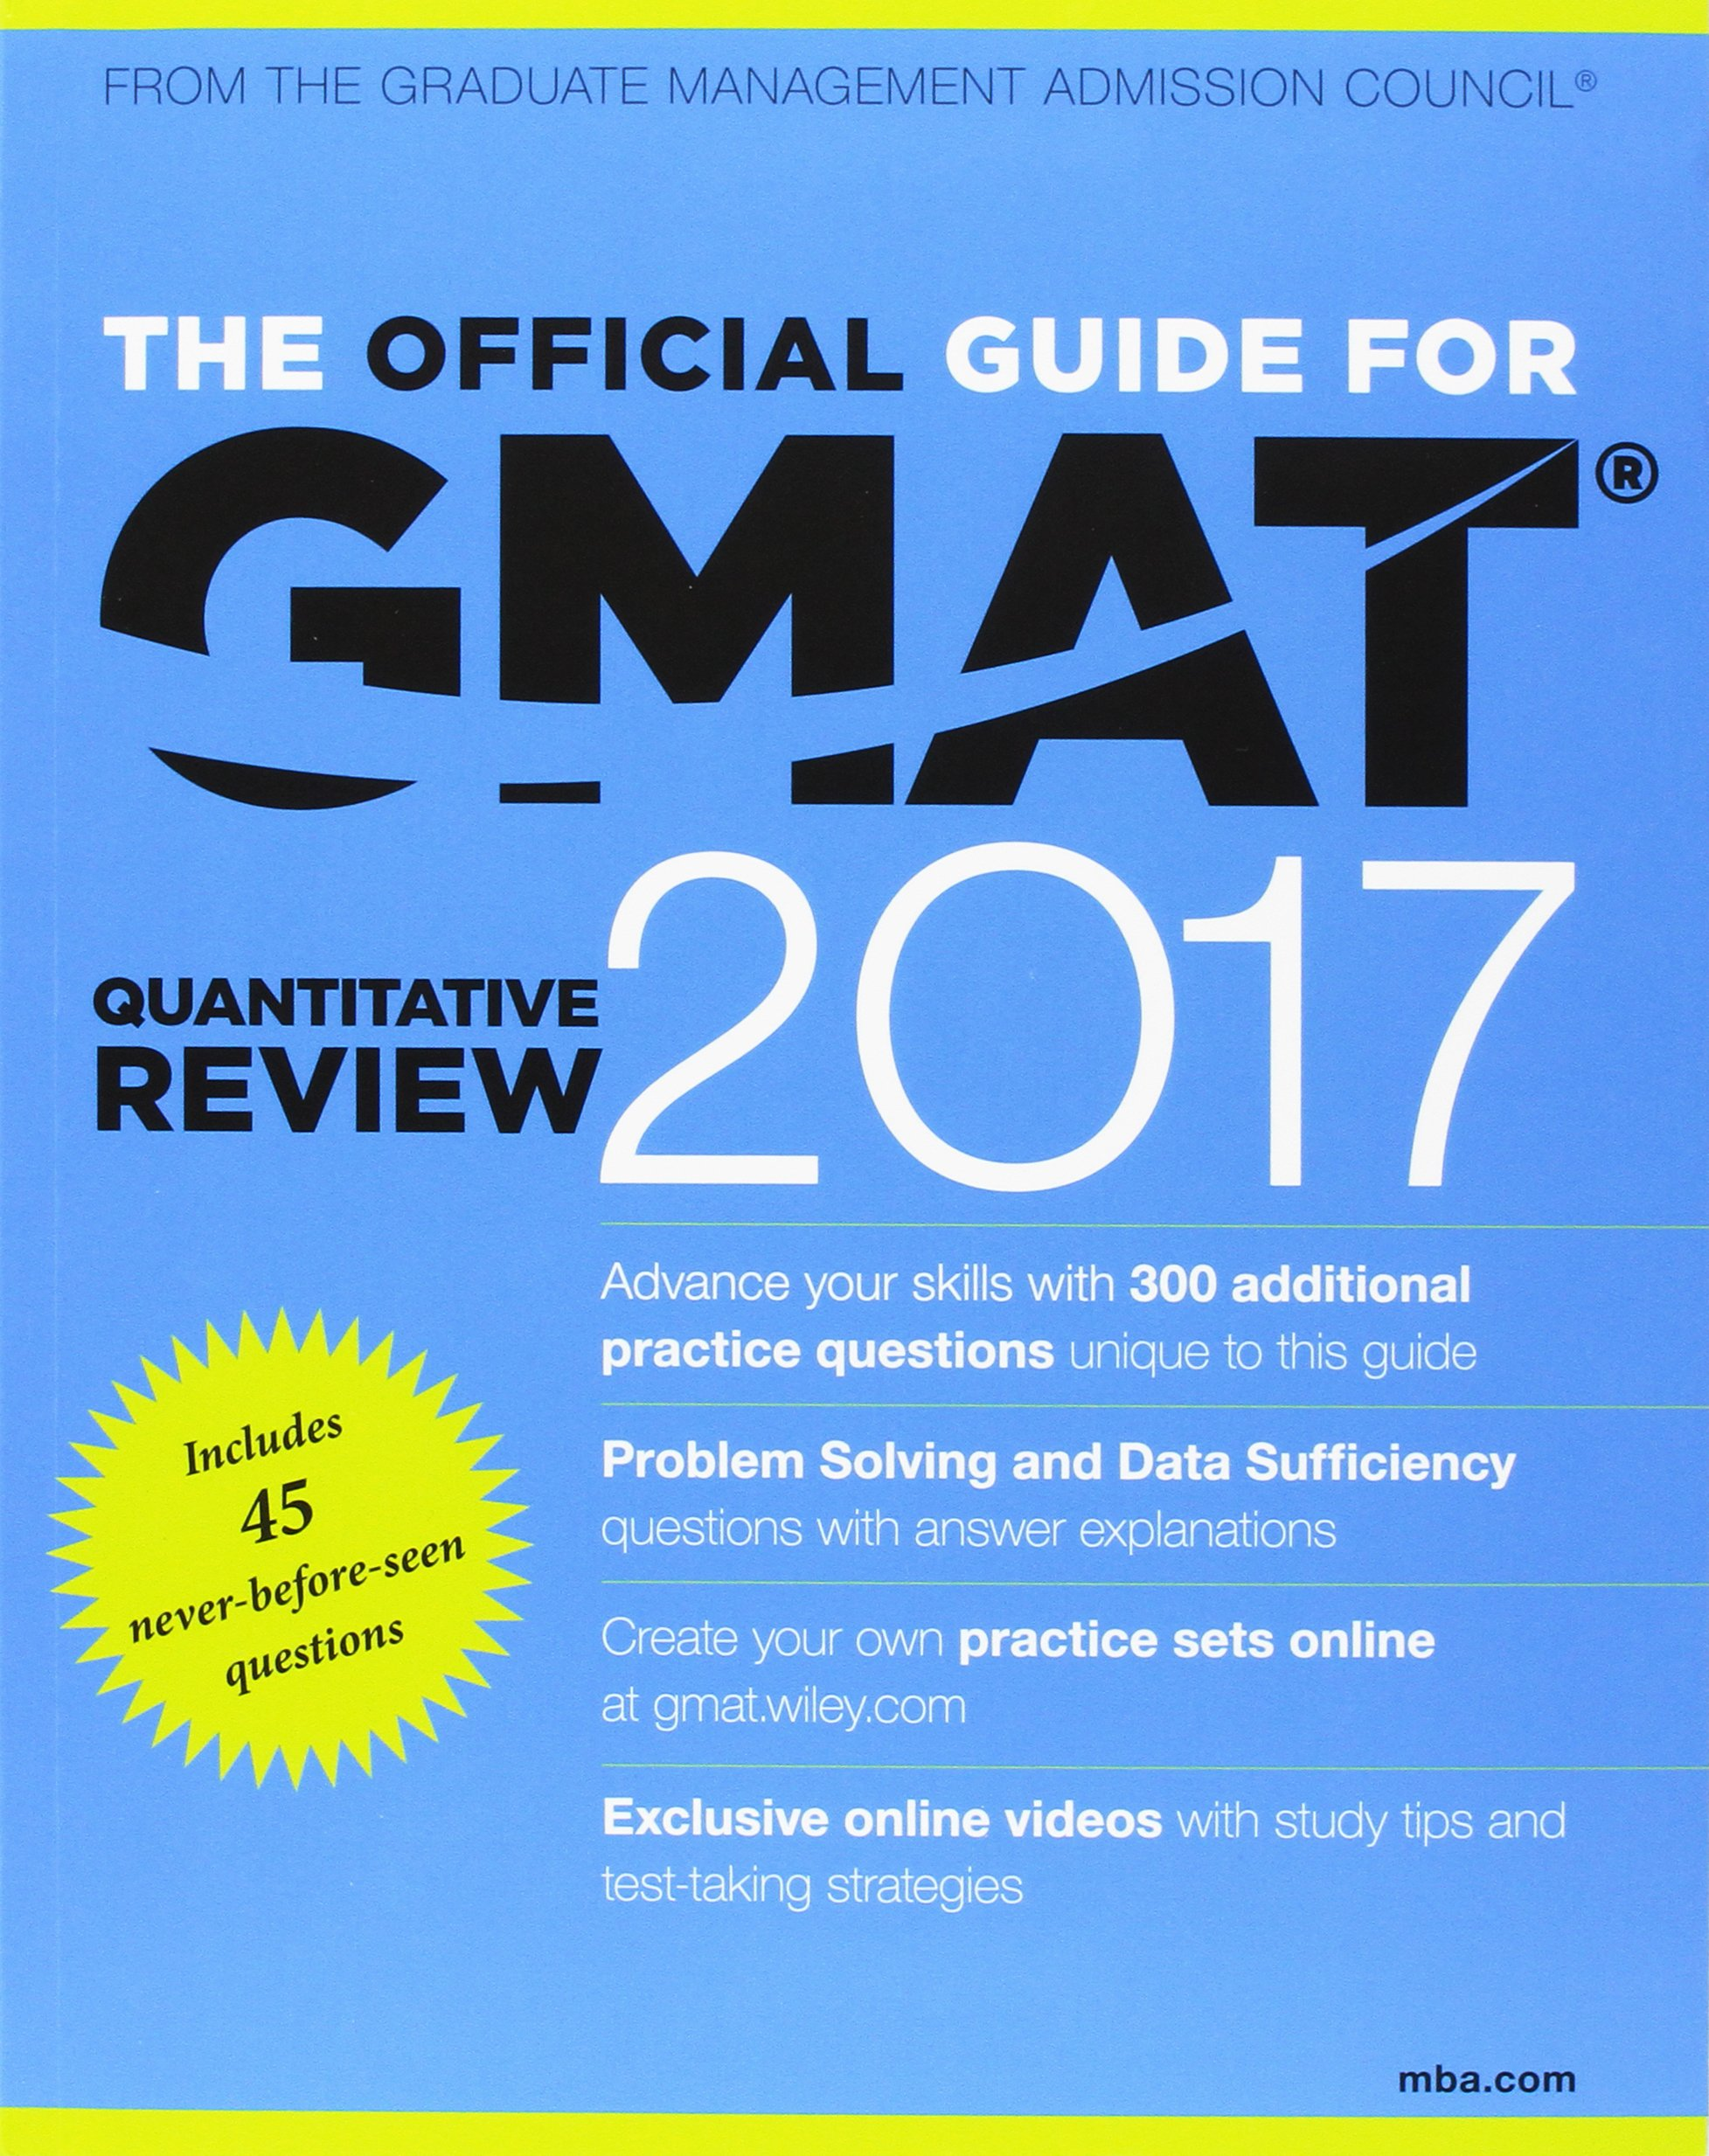 The official guide to the gmat review 2017 bundle question bank the official guide to the gmat review 2017 bundle question bank video gmac graduate management admission council 9781119254683 amazon books fandeluxe Gallery